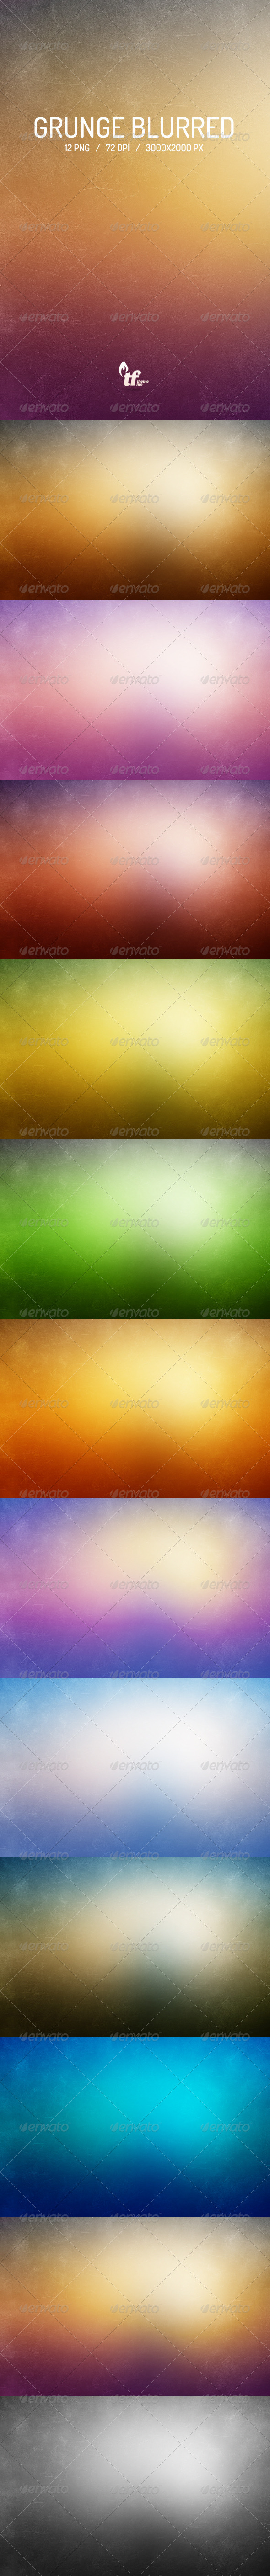 GraphicRiver Grunge Blurred Backgrounds 6835195